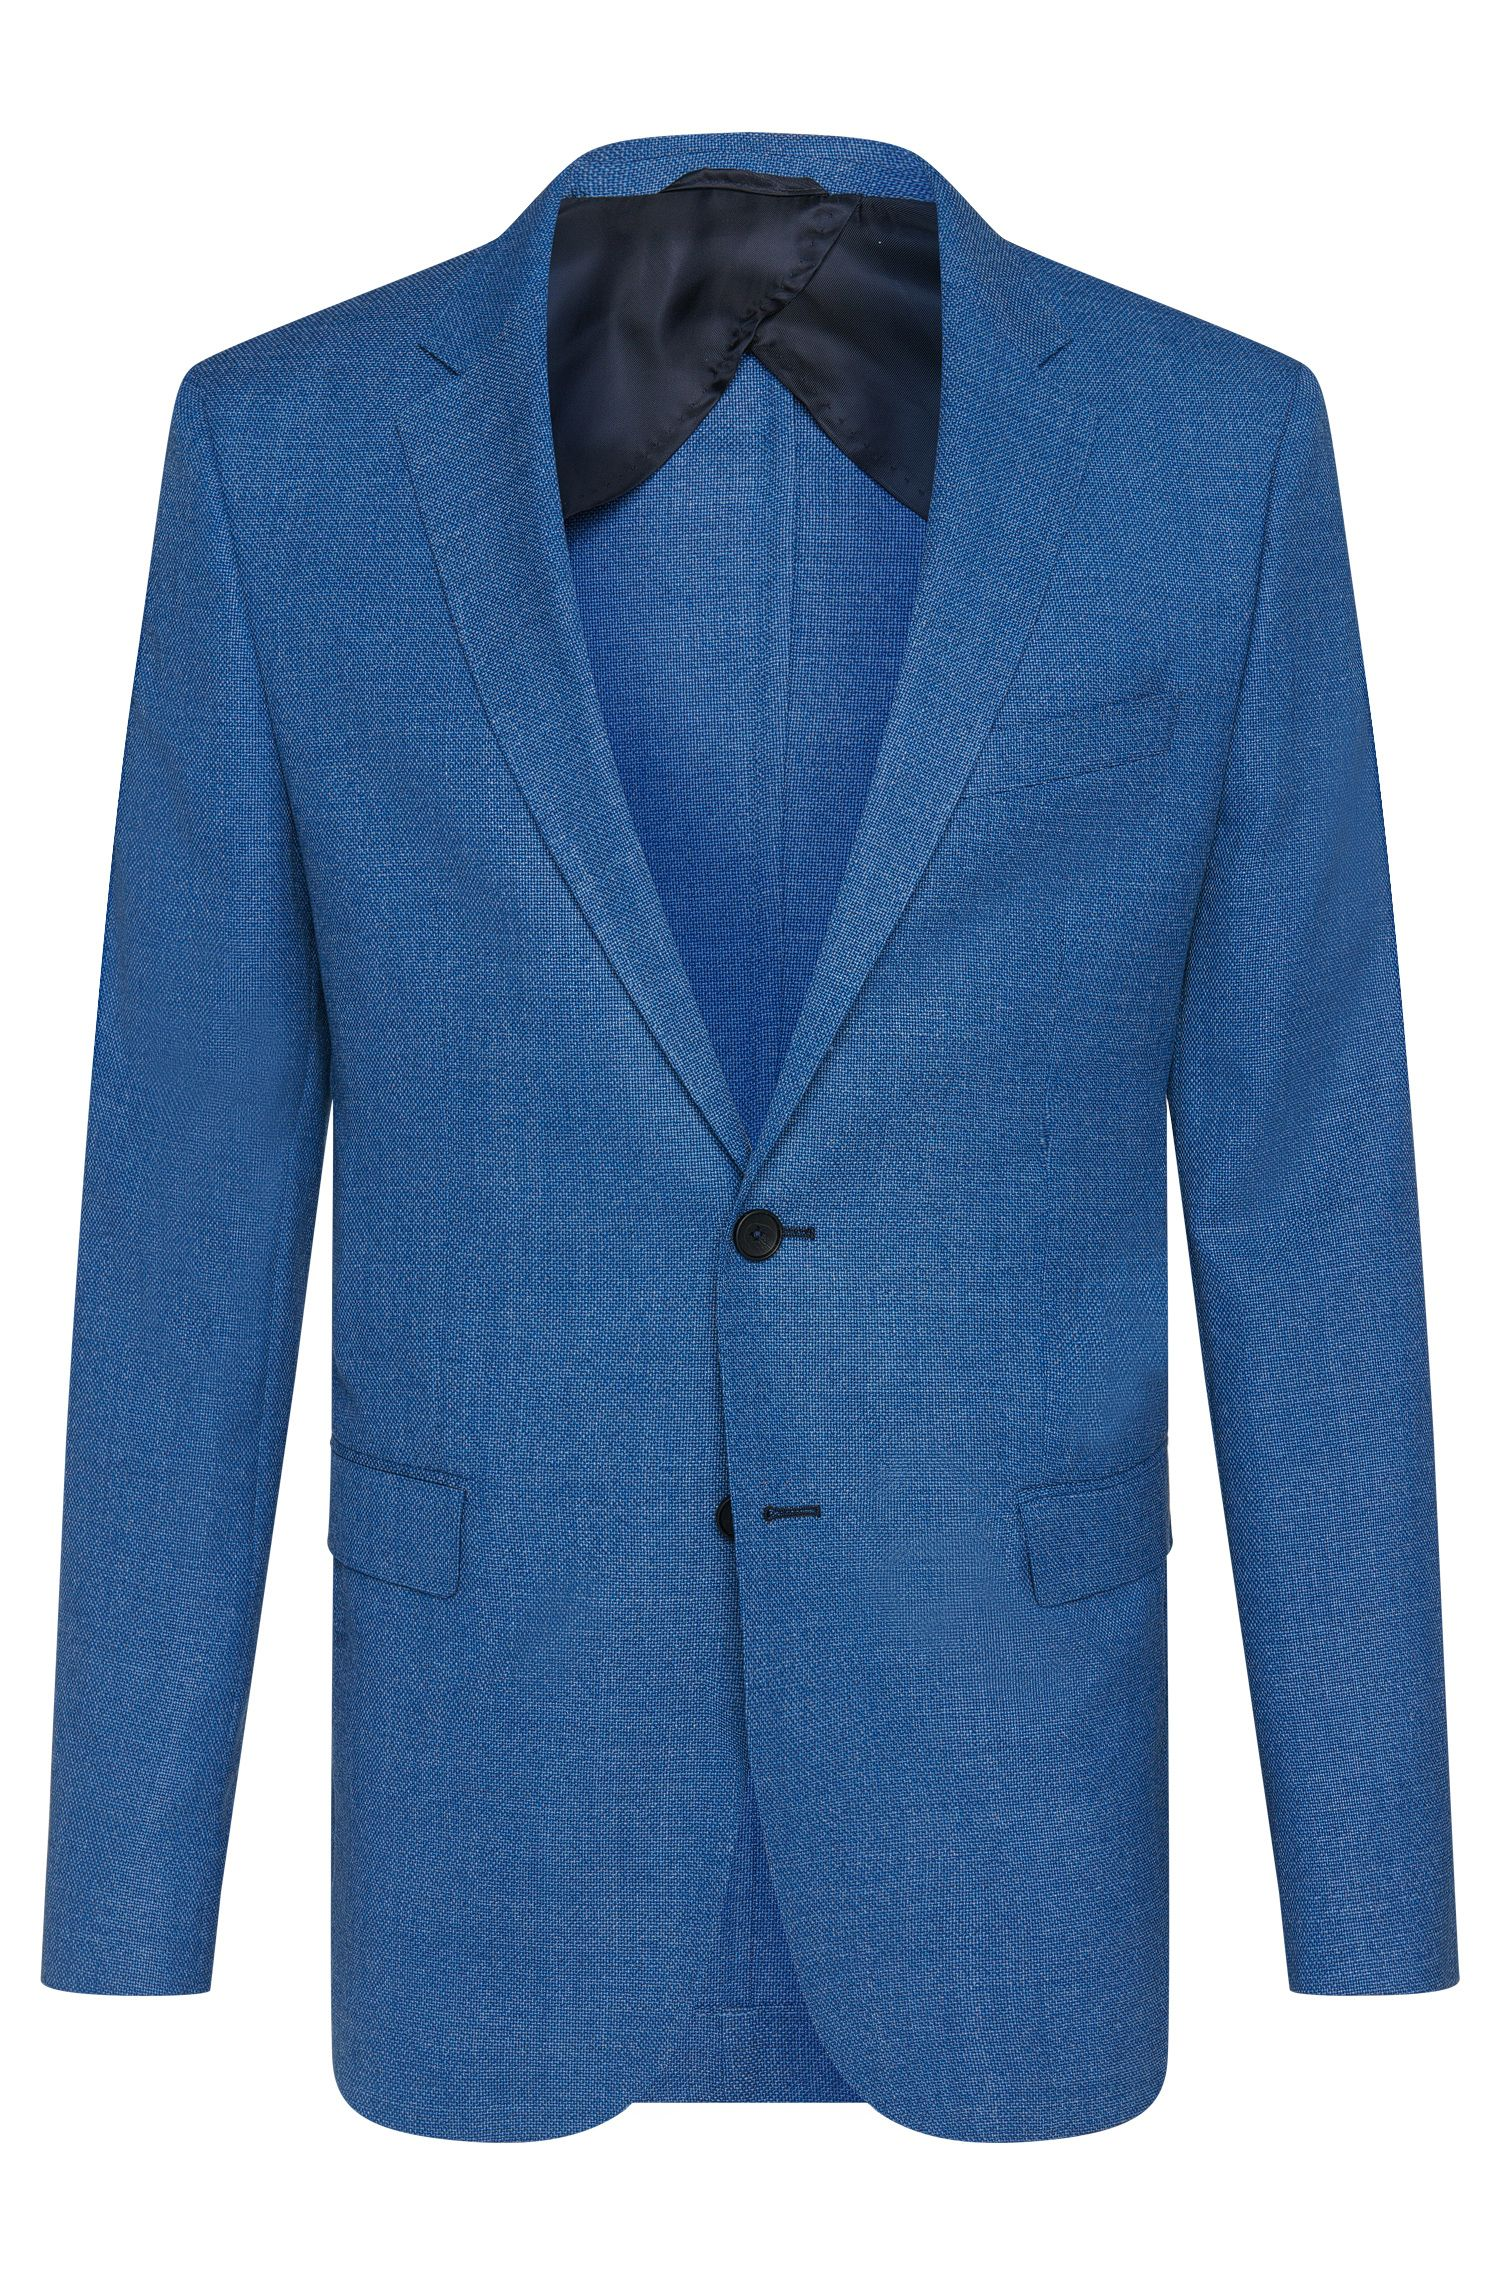 Virgin Wool Sport Coat, Slim Fit | Nobis